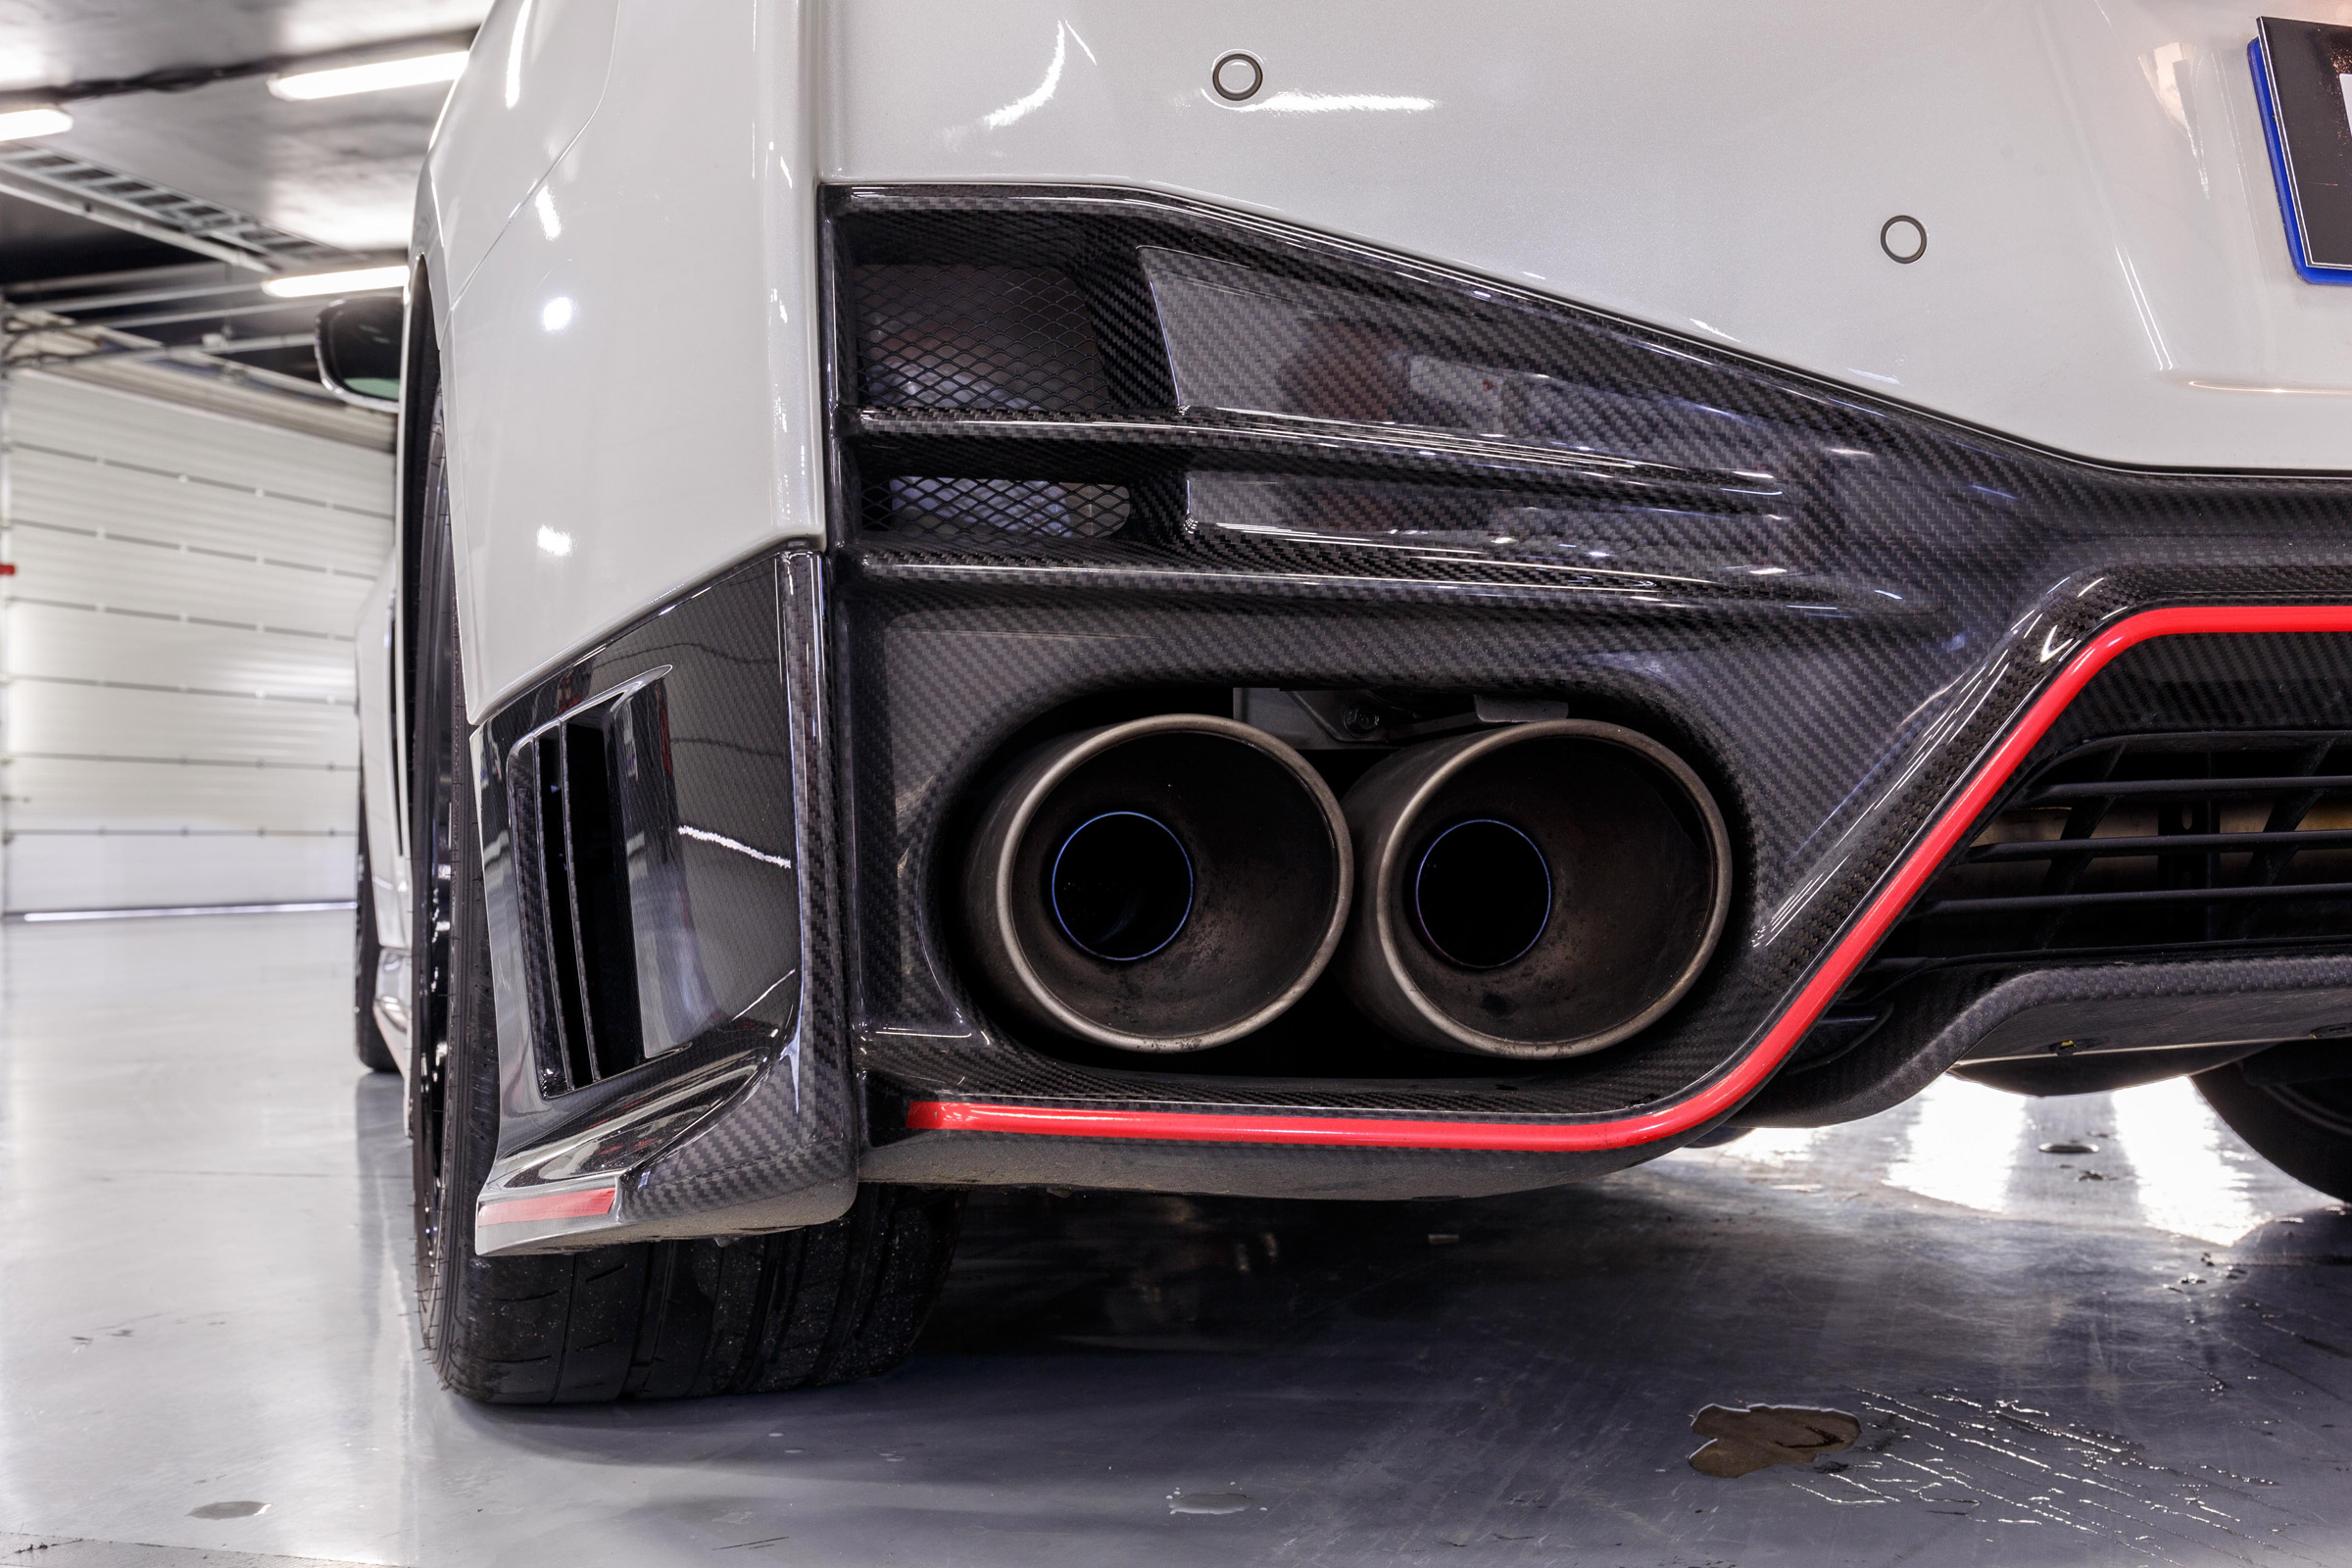 2017 Nissan GT R NISMO Exterior View Exhaust Pipe (Photo 7 of 22)